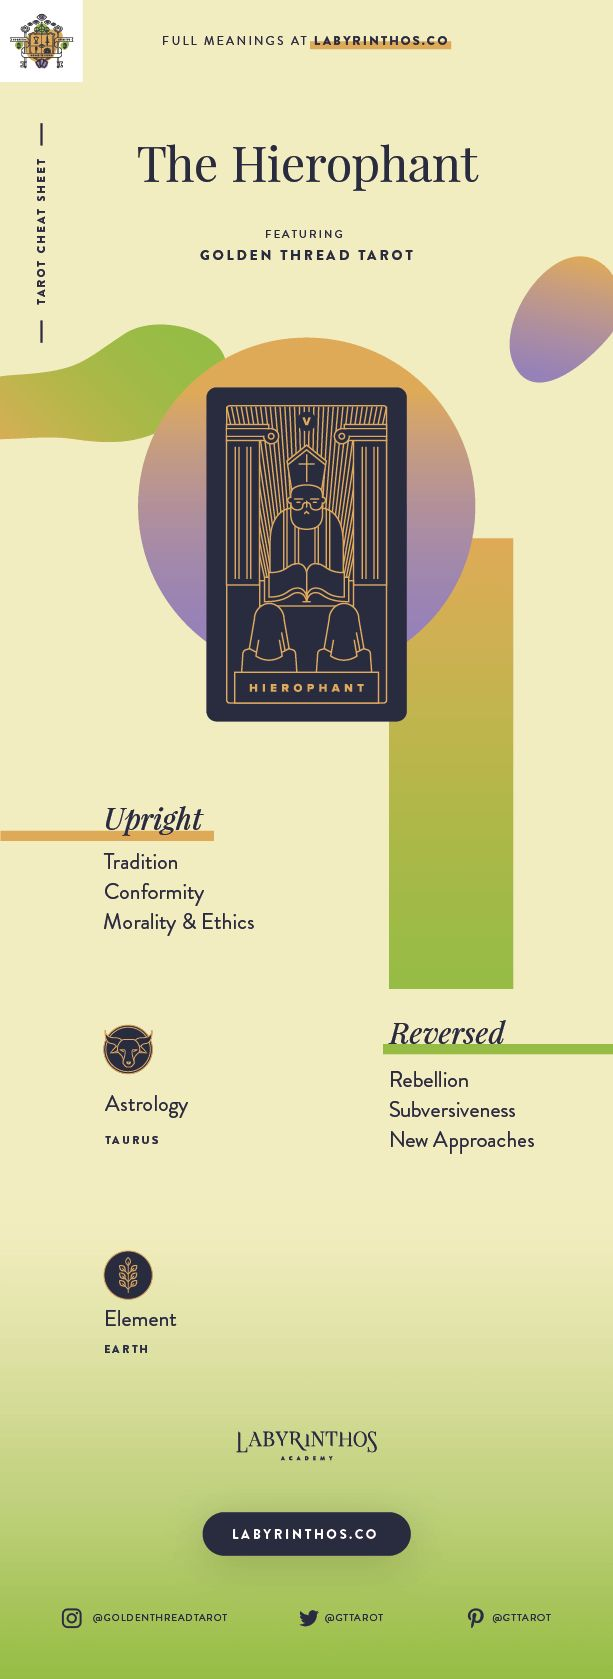 The Hierophant Meaning - Tarot Card Meanings Cheat Sheet. Art from Golden Thread Tarot.